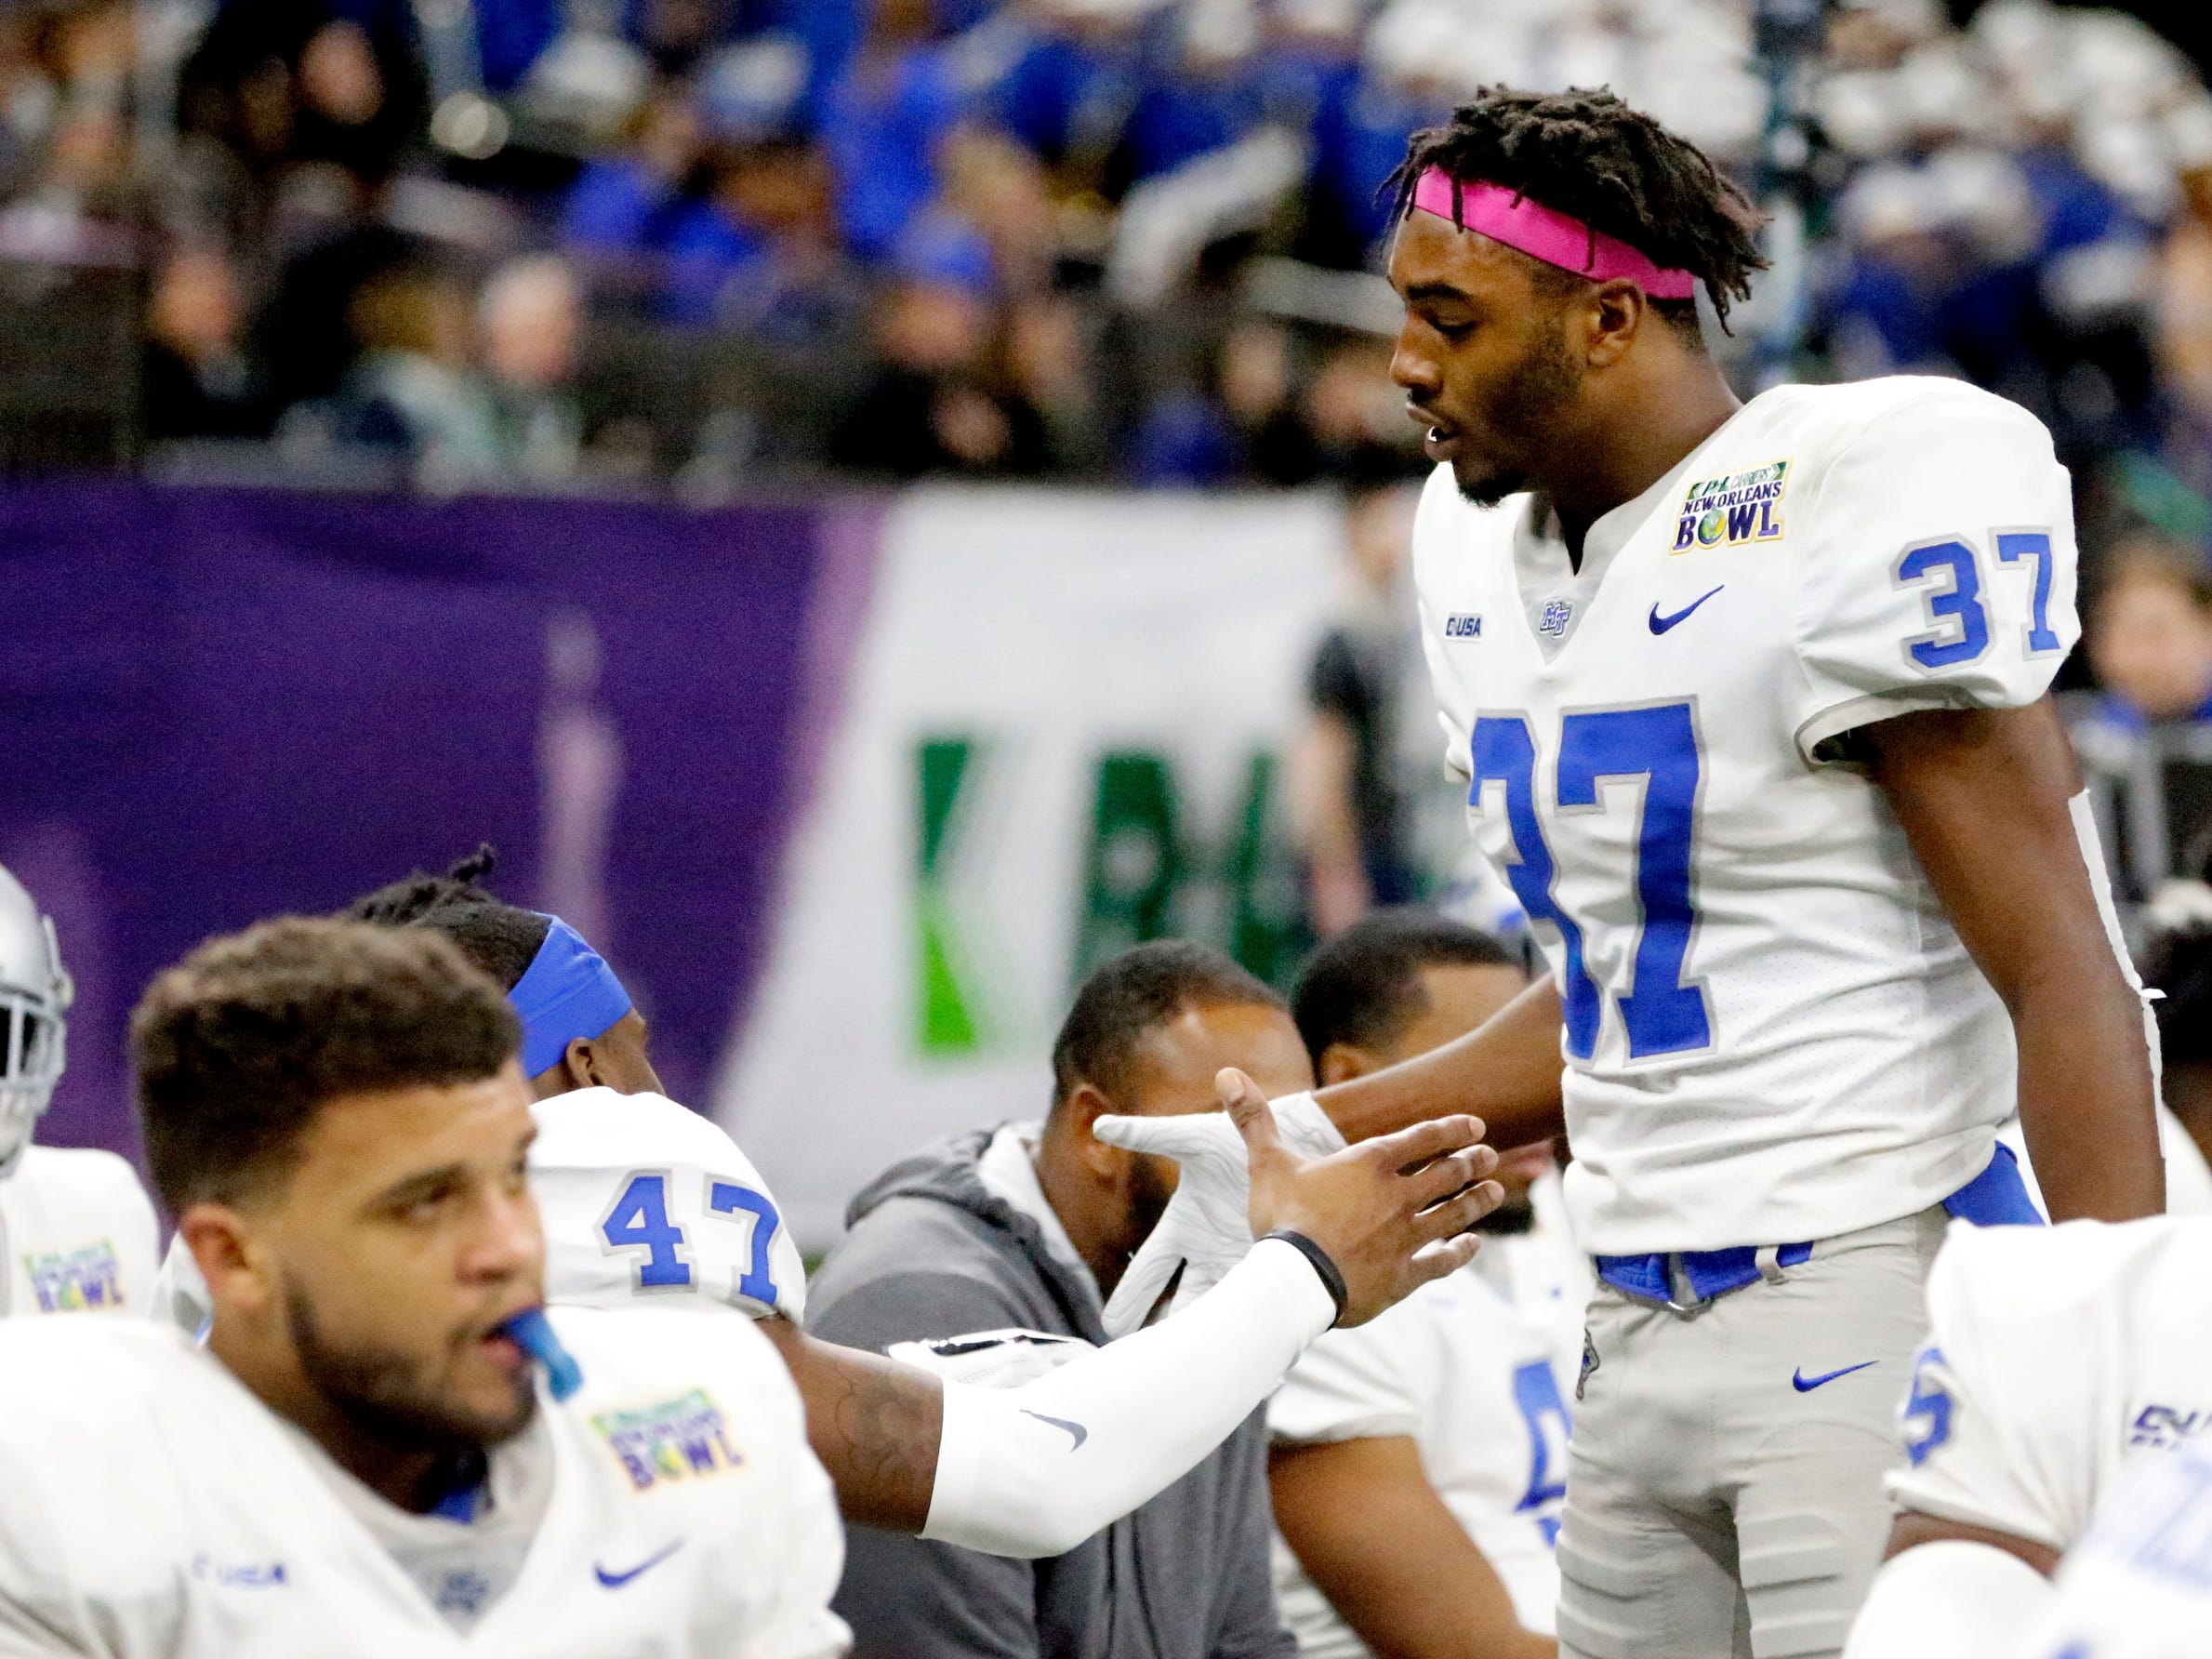 Middle Tennessee Blue Raiders wide receiver Patrick Smith (37) shakes hands with many of the offensive line players near the end of the game as they lose to  Appalachian State on Saturday, Dec. 15, 2018, in the New Orleans Bowl.